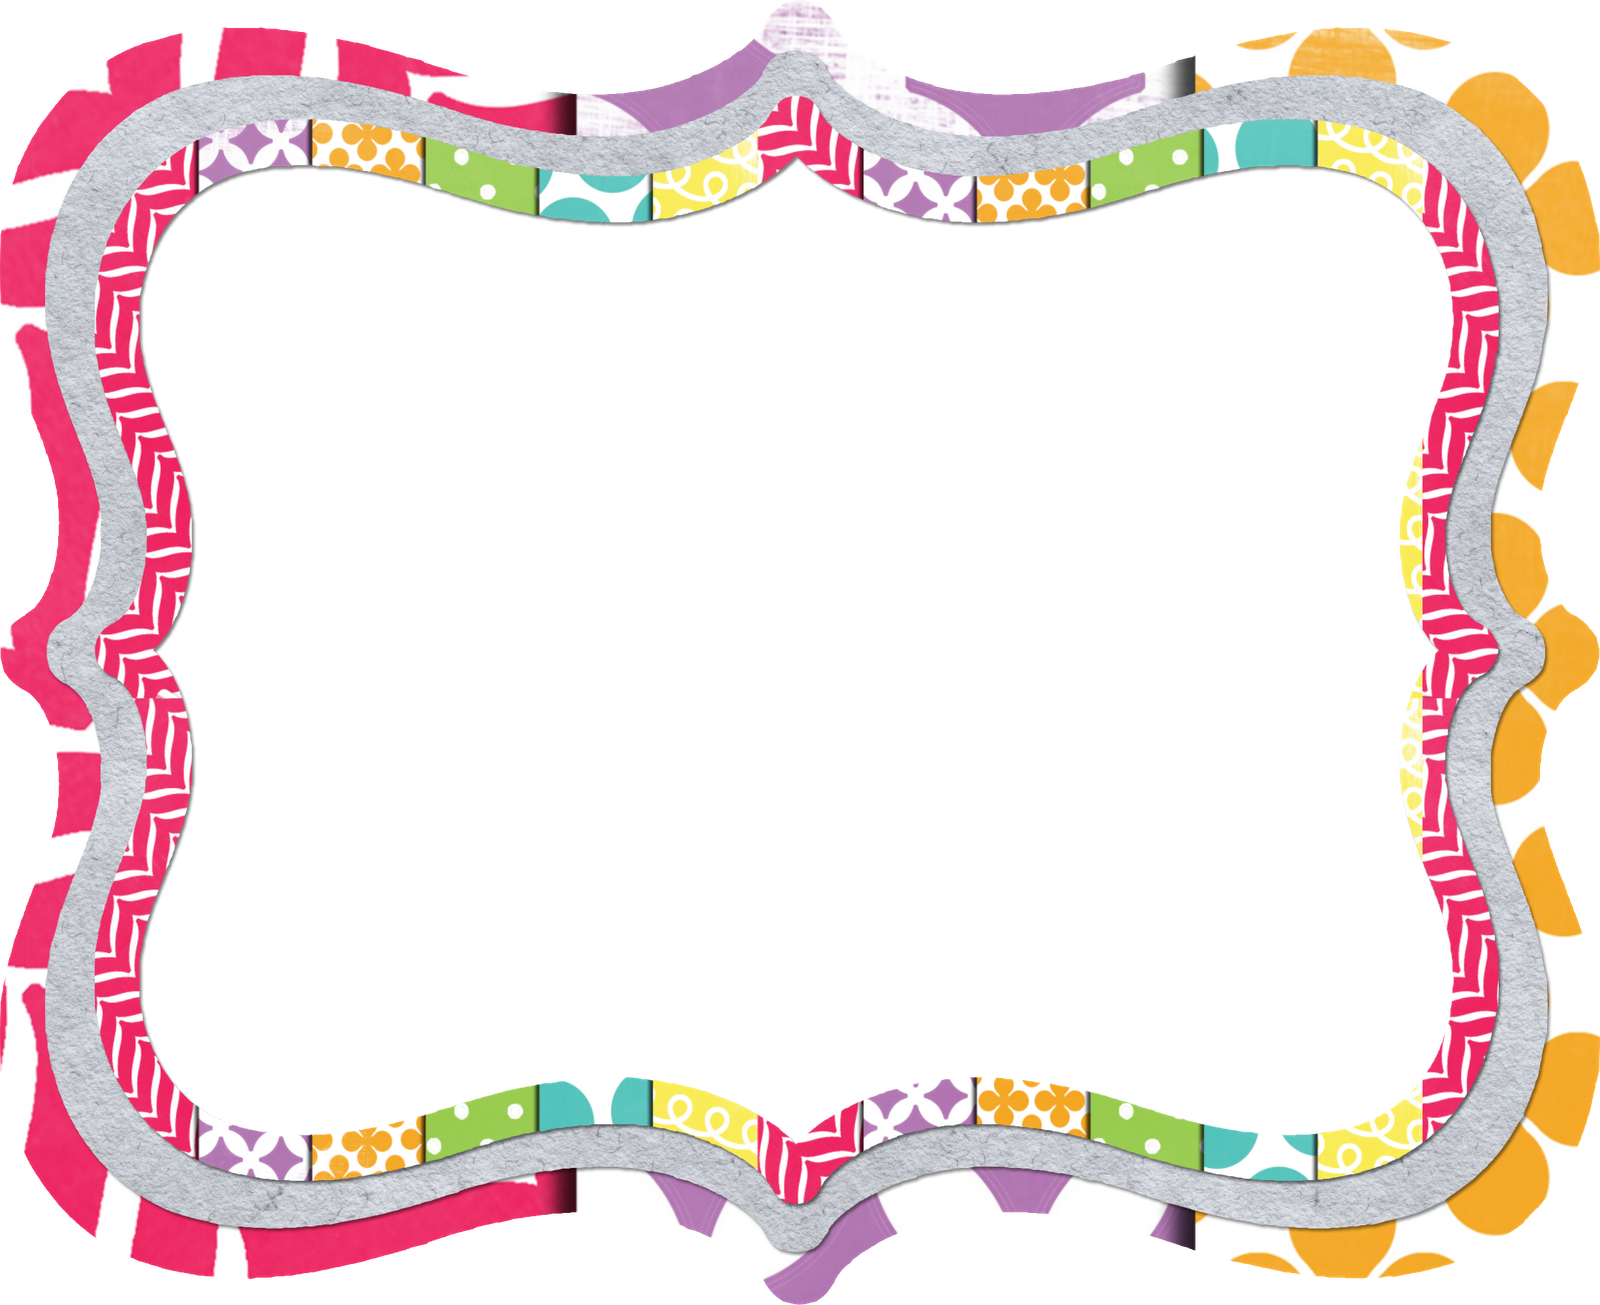 Png borders and frames free download. Collection of school